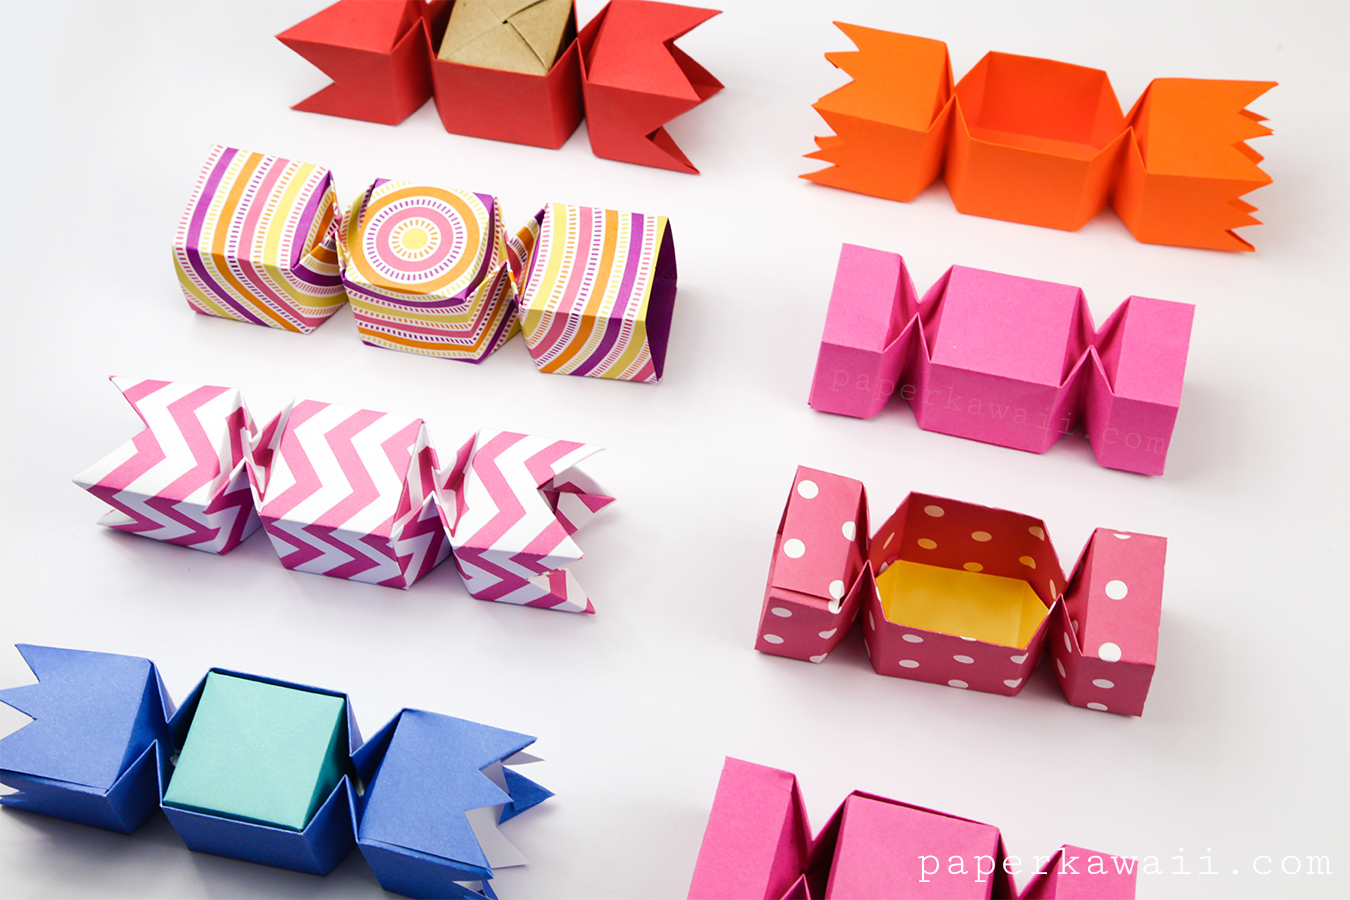 square-origami-candy-boxes-lined-up